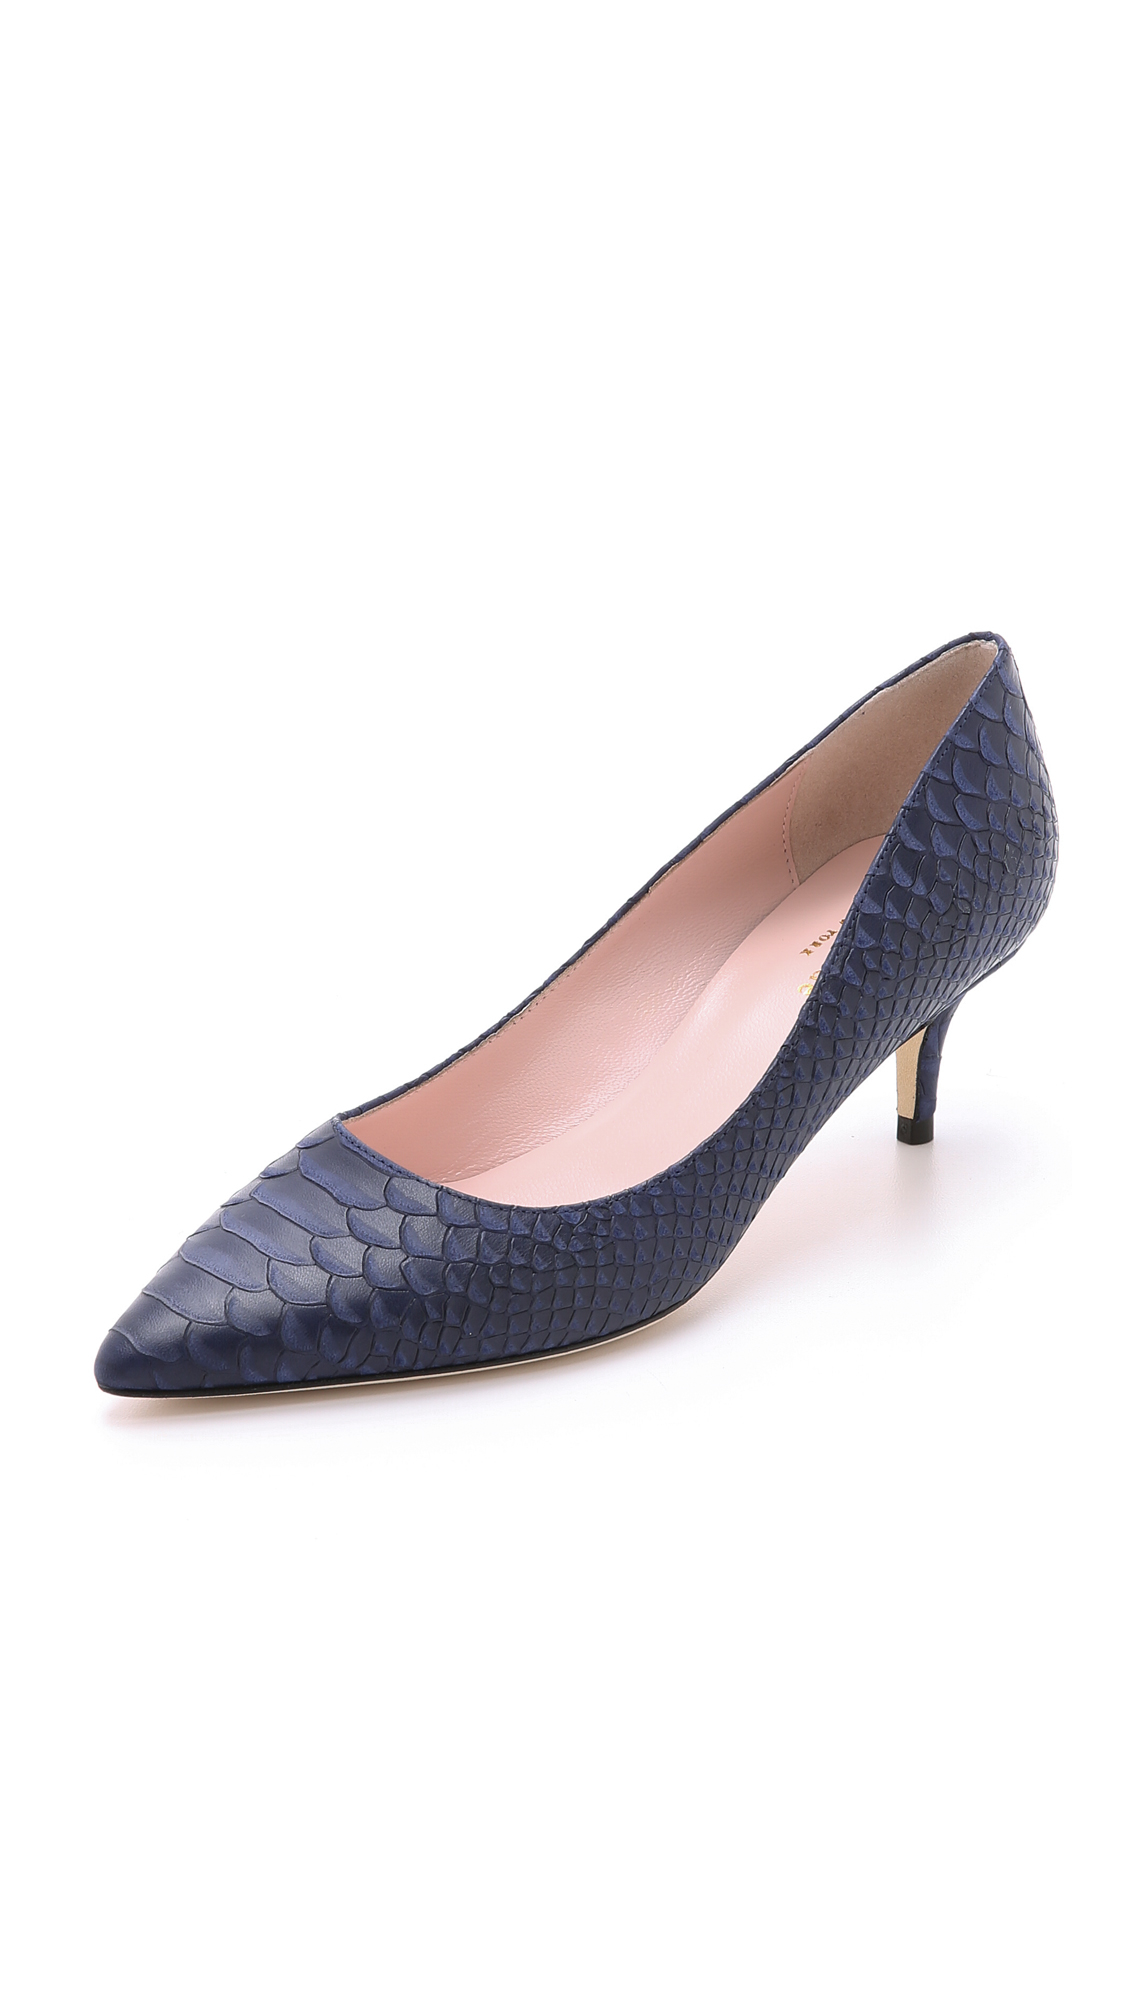 Navy Blue Kitten Heel Pumps - Is Heel